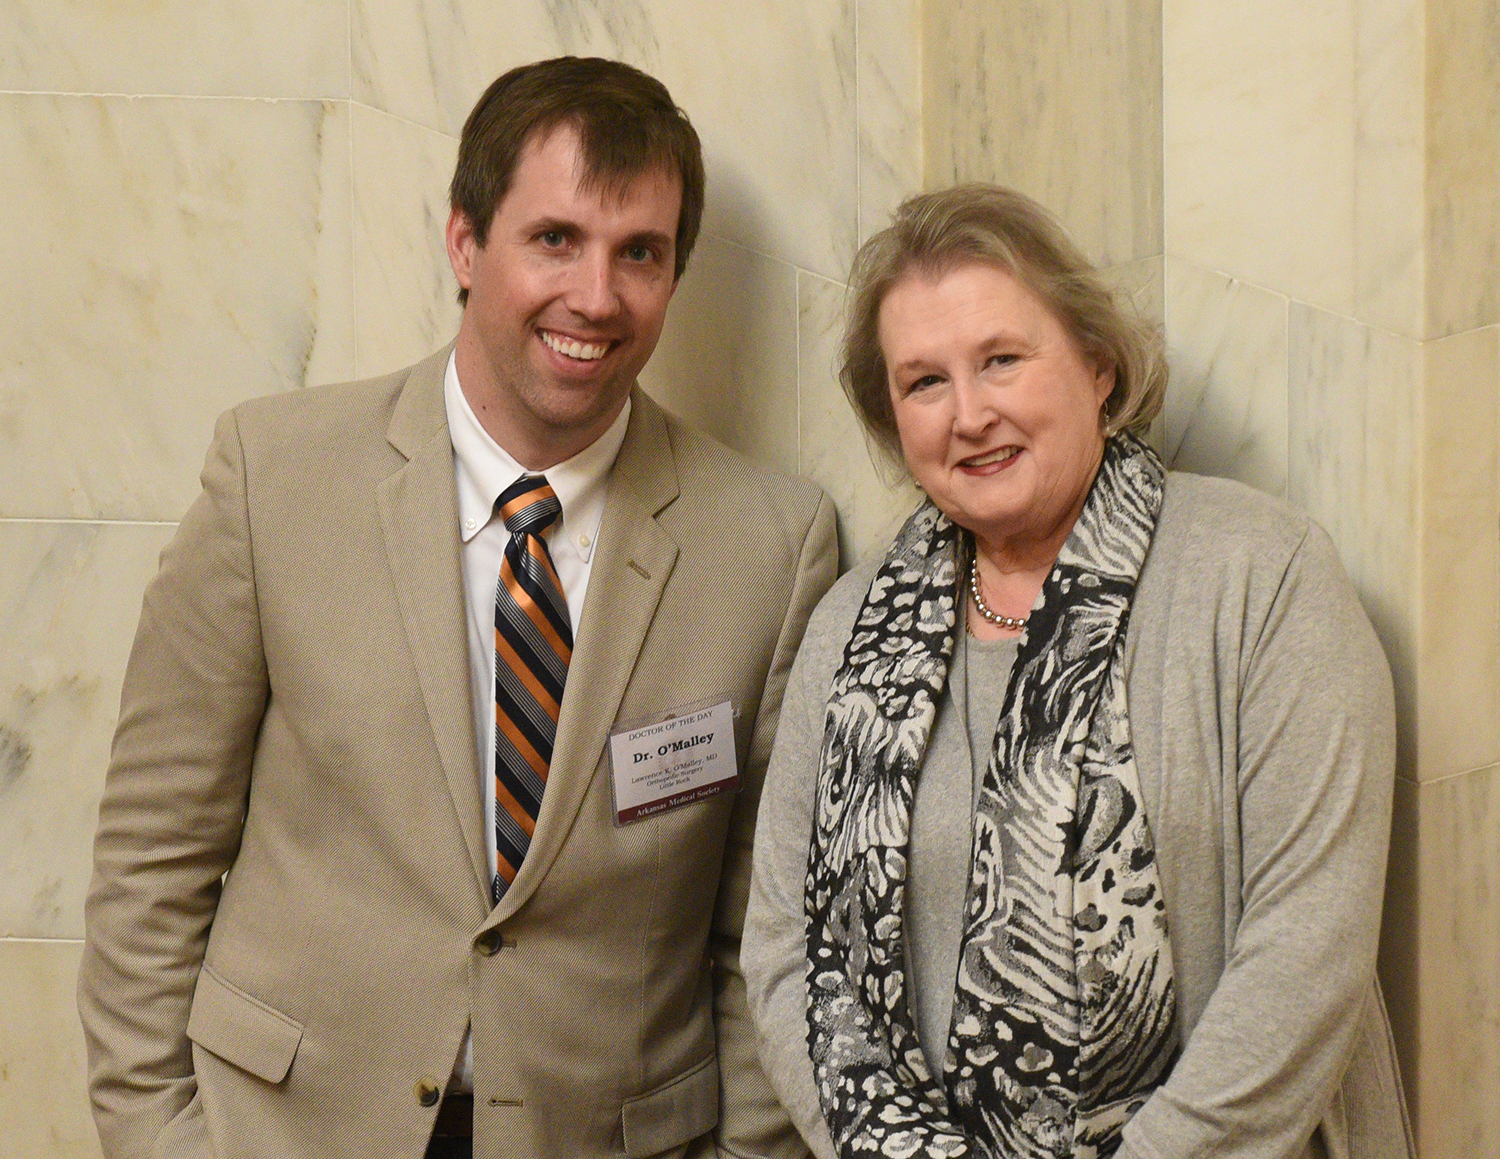 Lawrence O'Malley and Jo Smith at the Arkansas State Capitol.